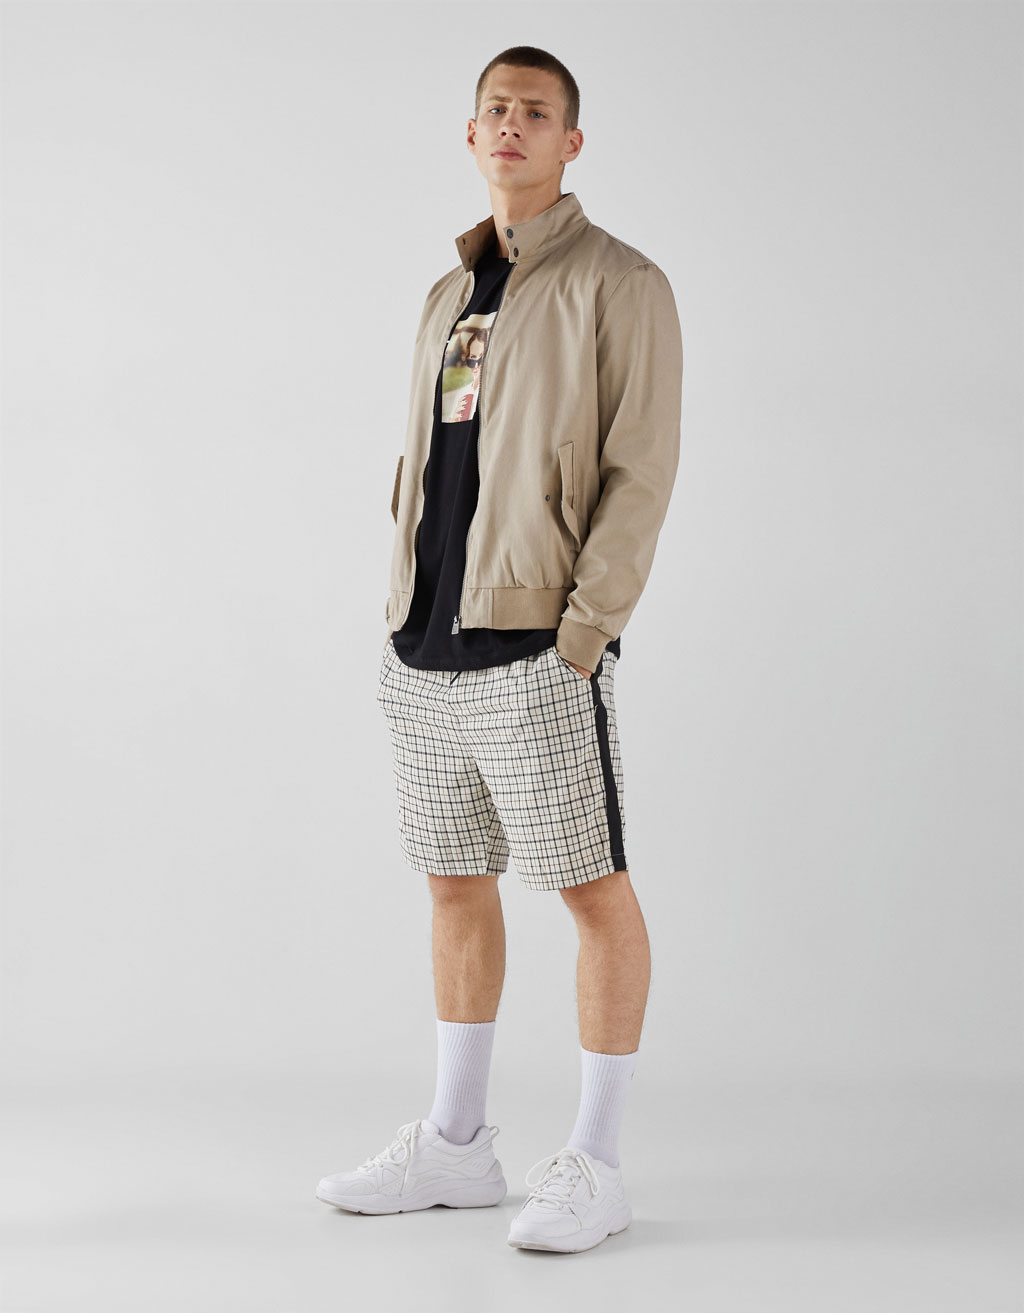 Checked Bermuda shorts with side stripes